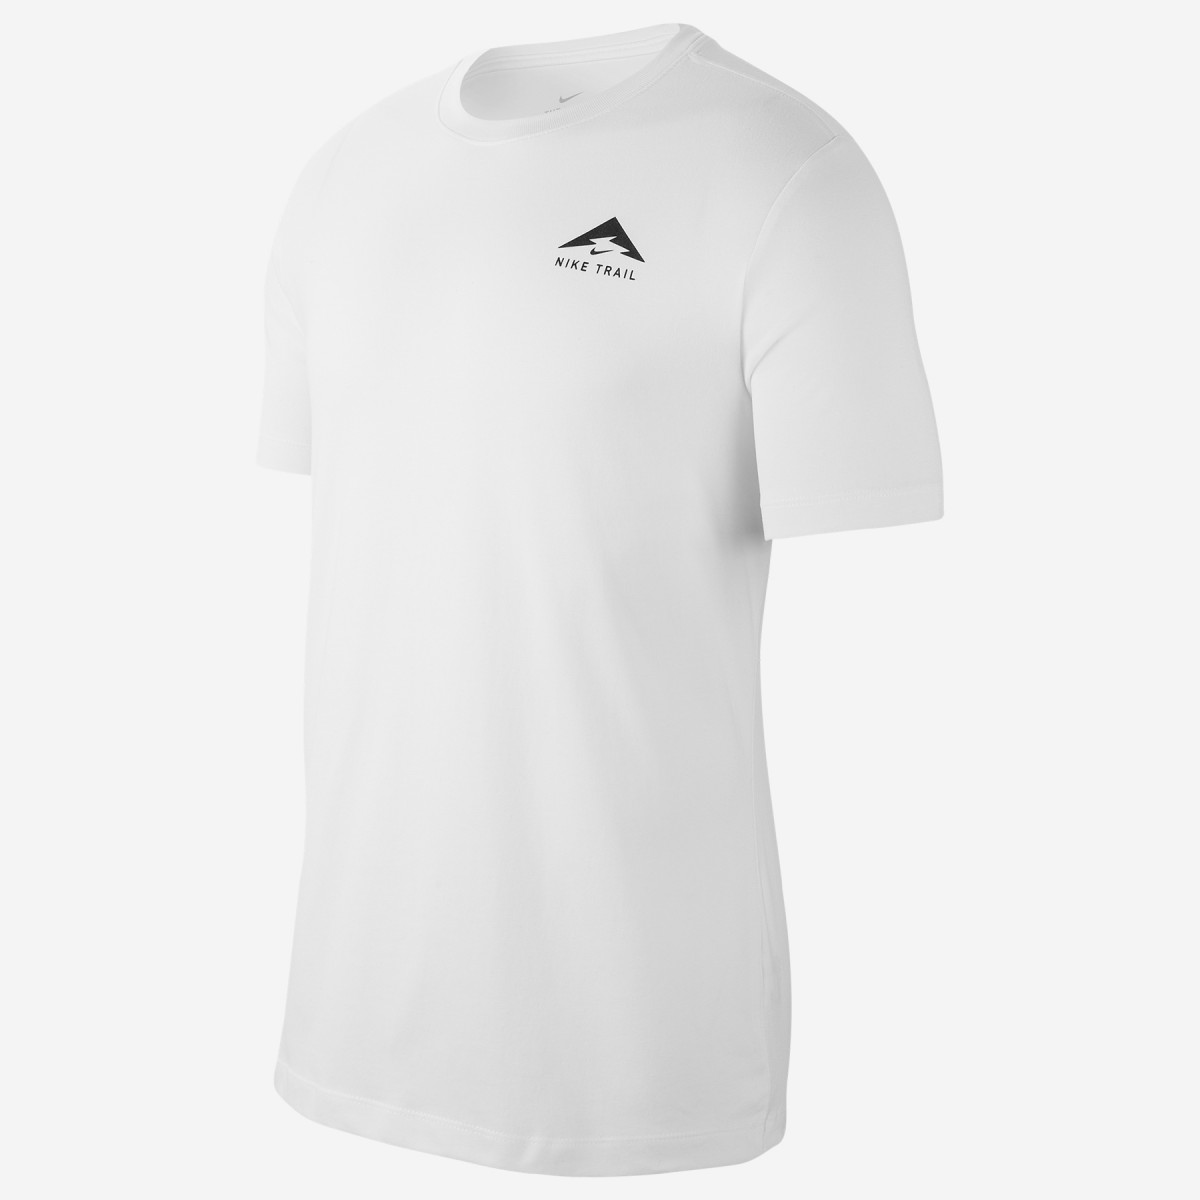 Nike Trail Dri-FIT Trail Running Tee